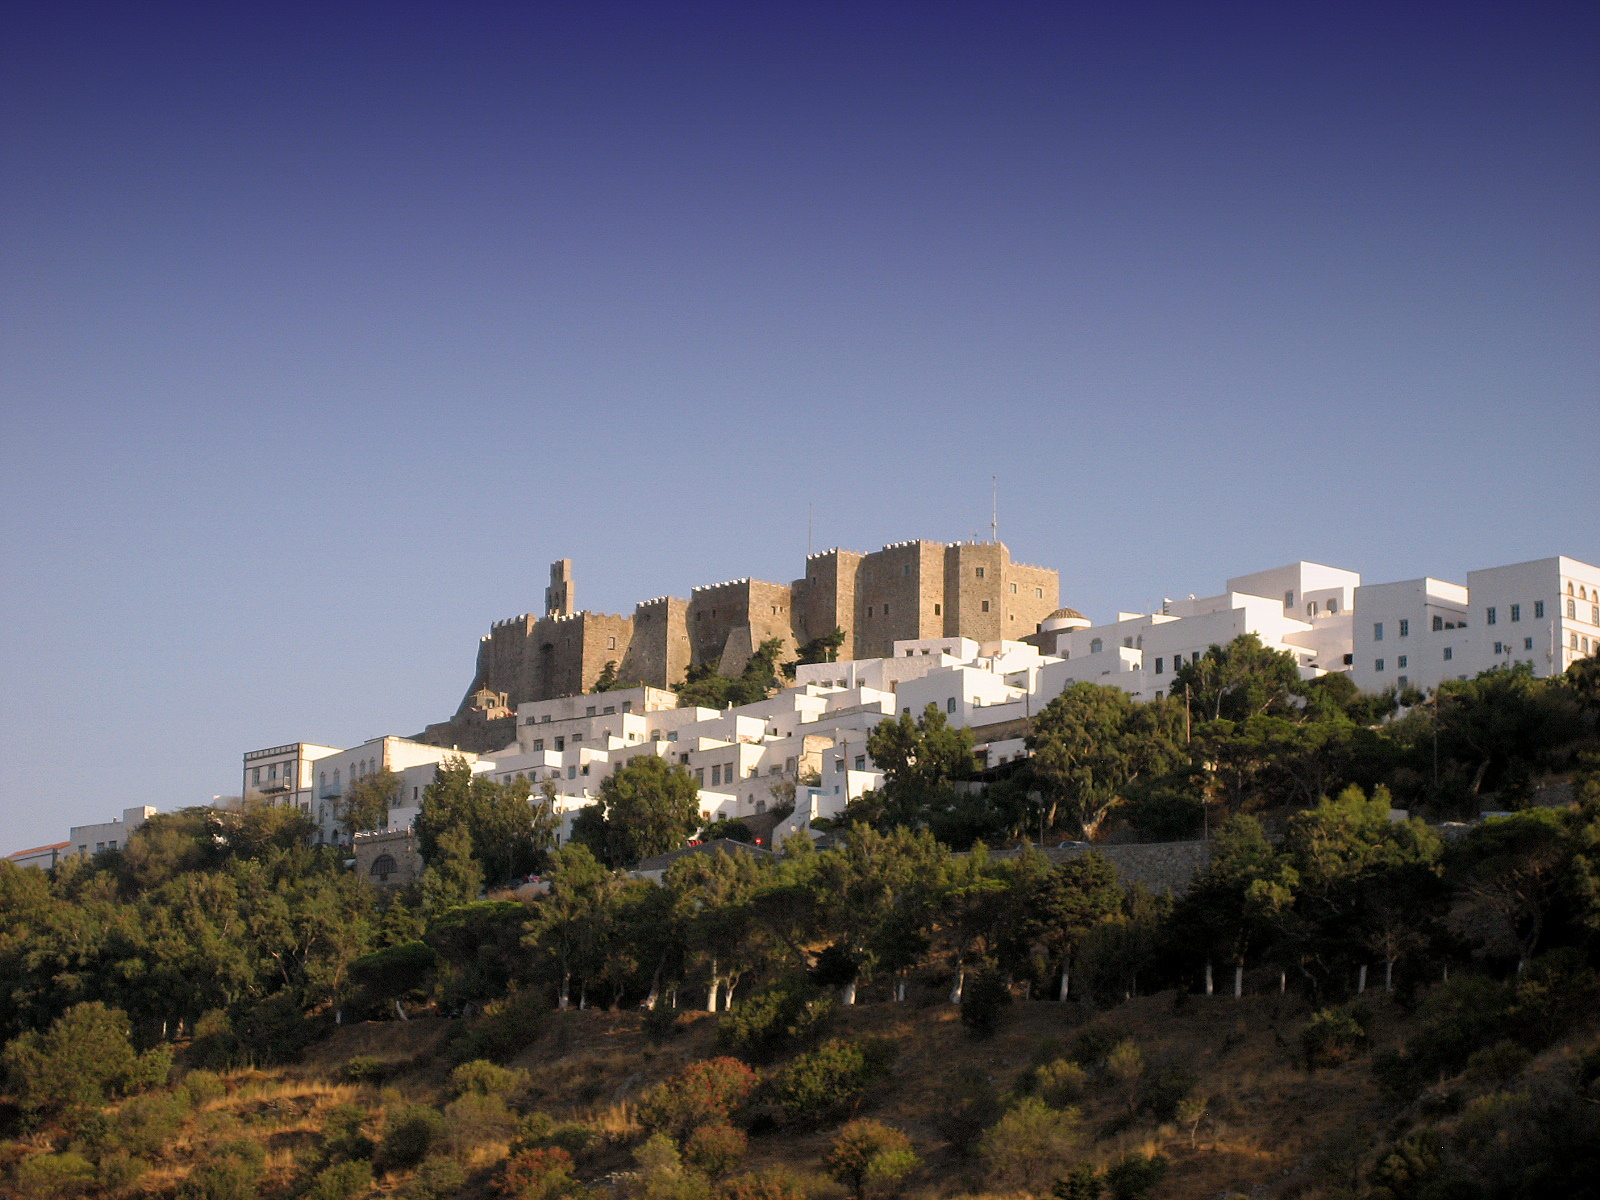 Patmos_Island_Greece_The_Castle